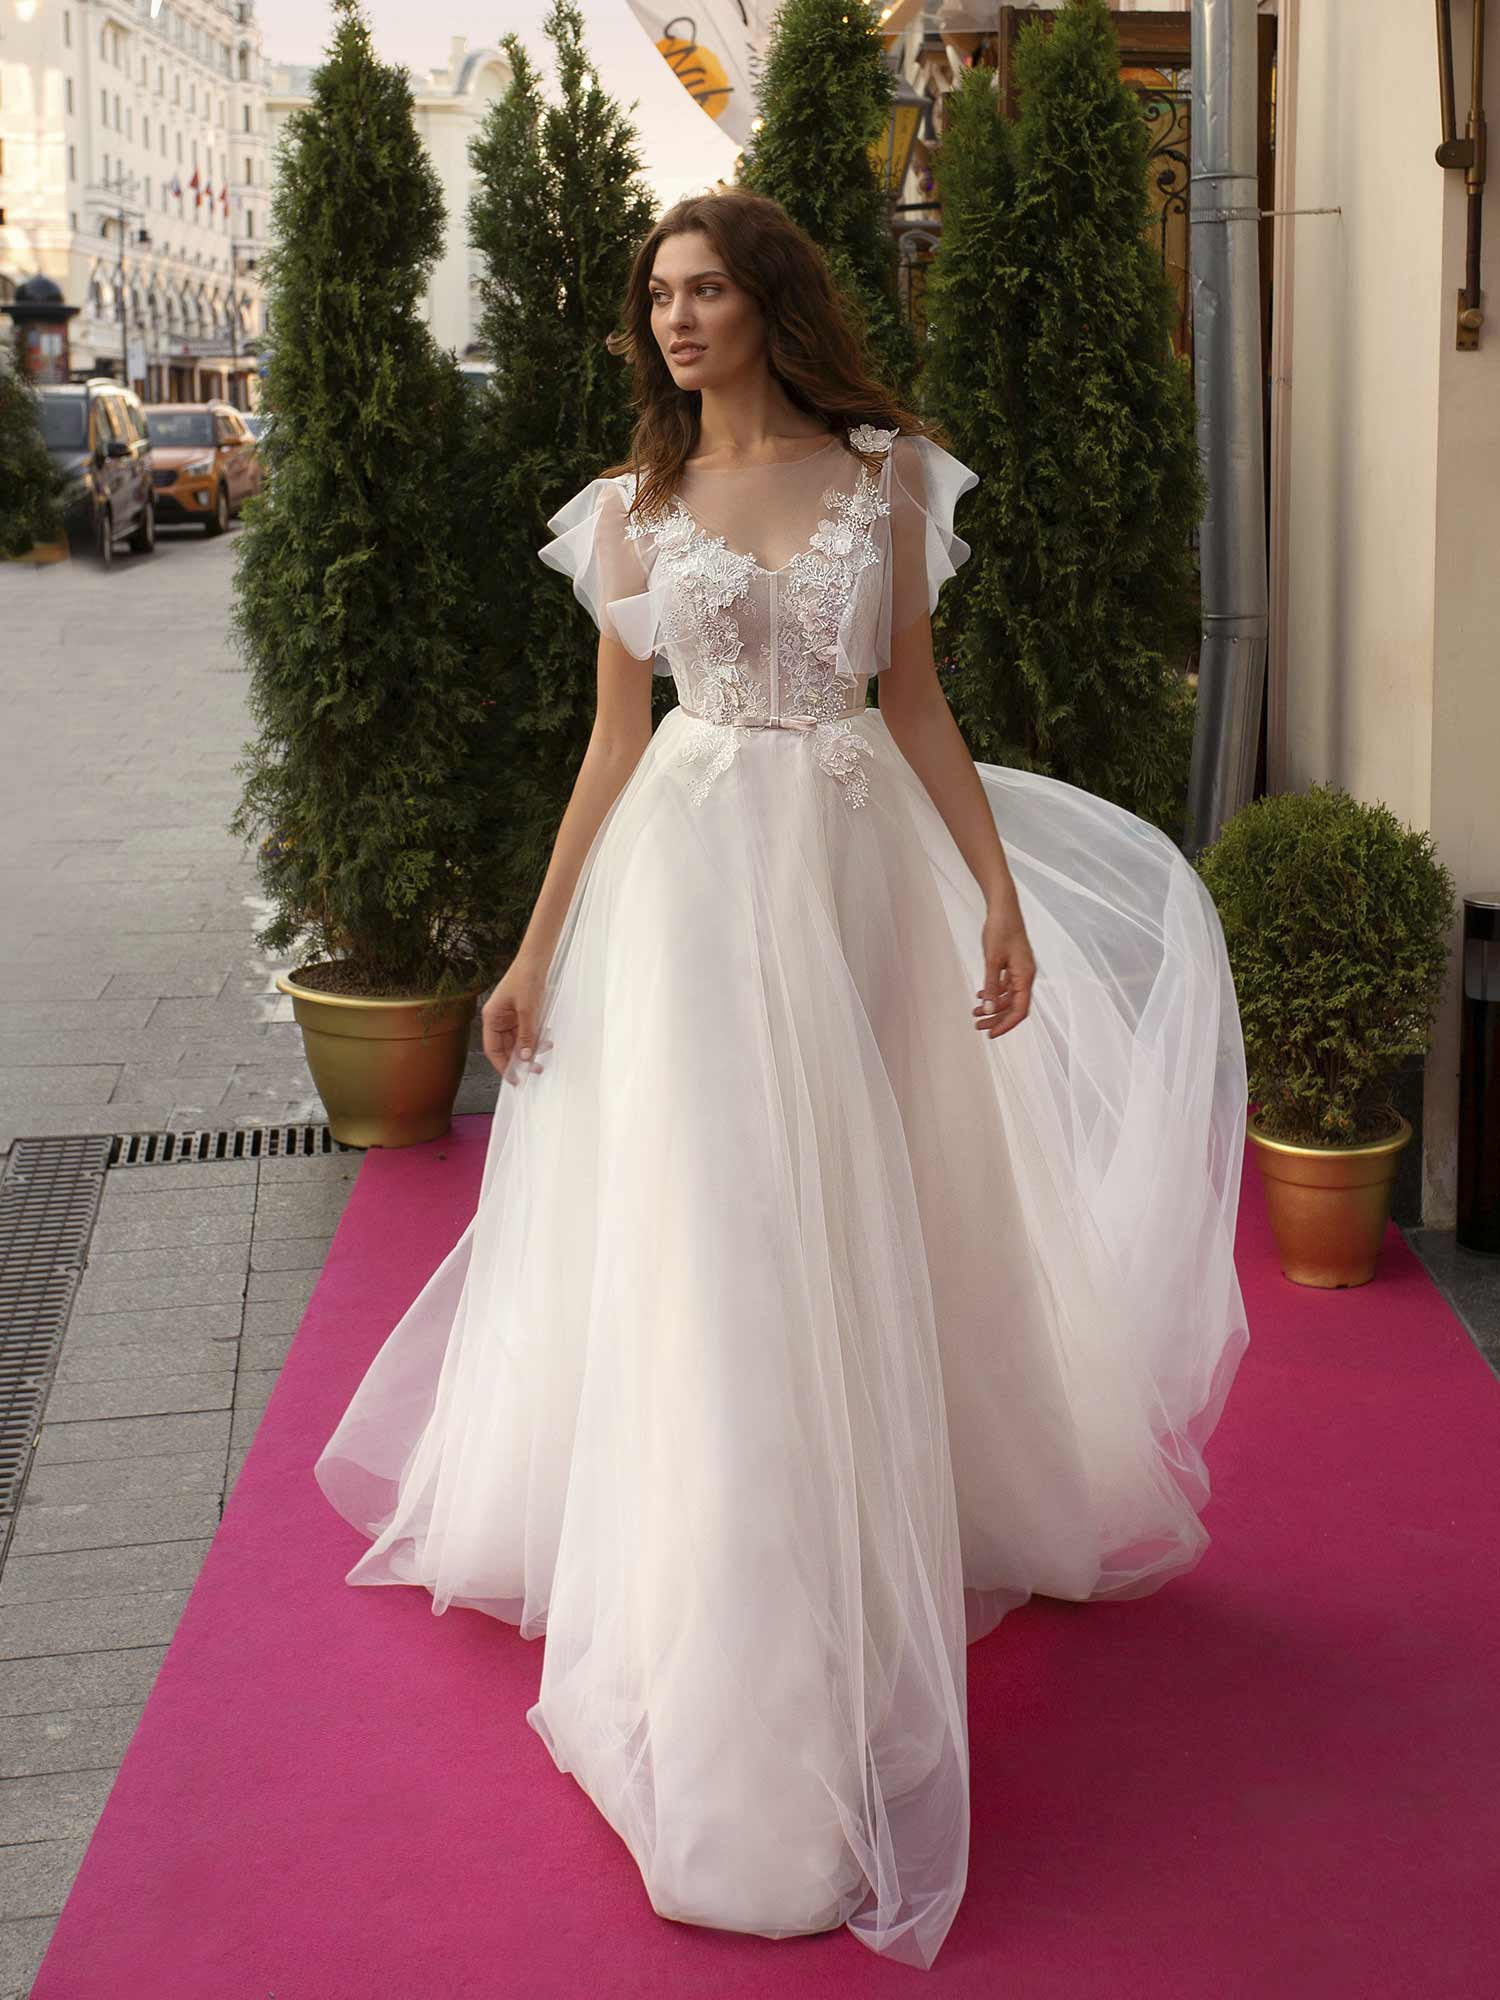 Cape Sleeved Wedding Dress With Illusion Neckline And Floral Applique Across The Bodice